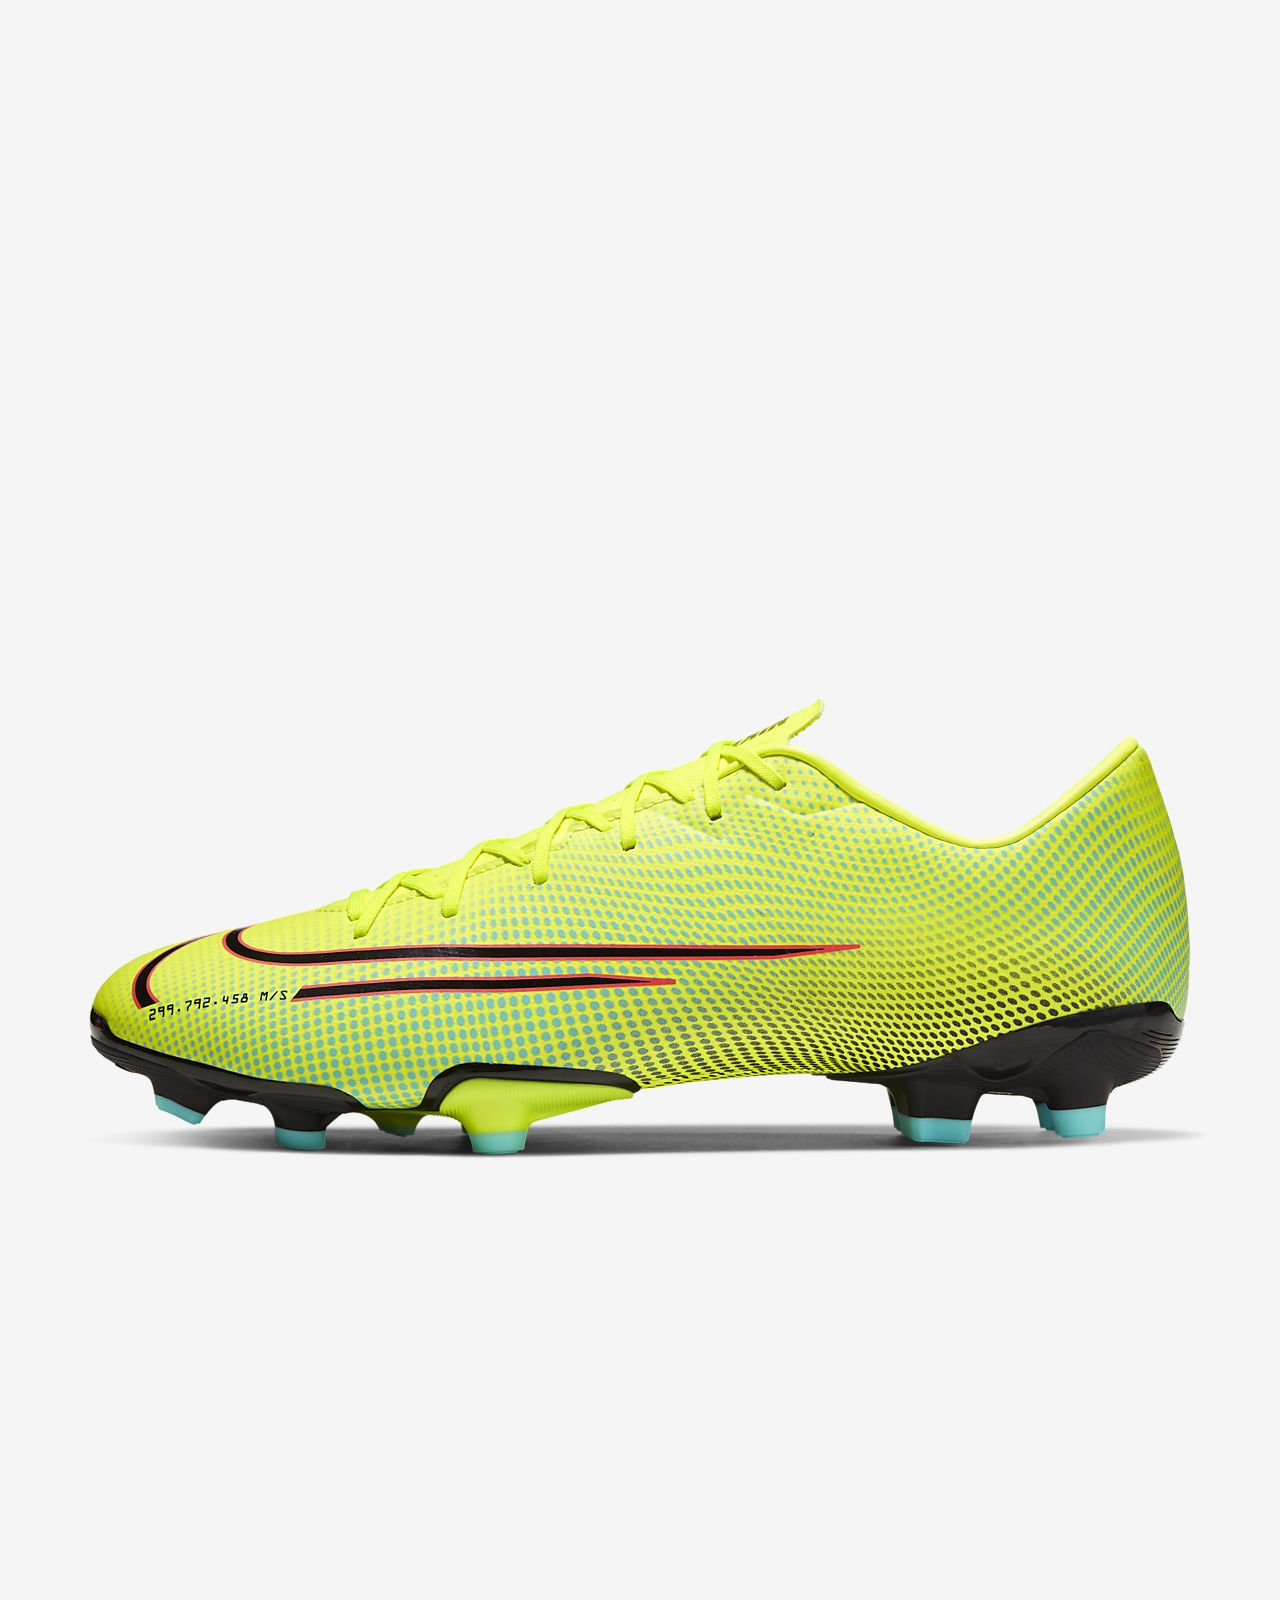 Scarpa da calcio multiterreno Nike Mercurial Vapor 13 Academy MDS MG